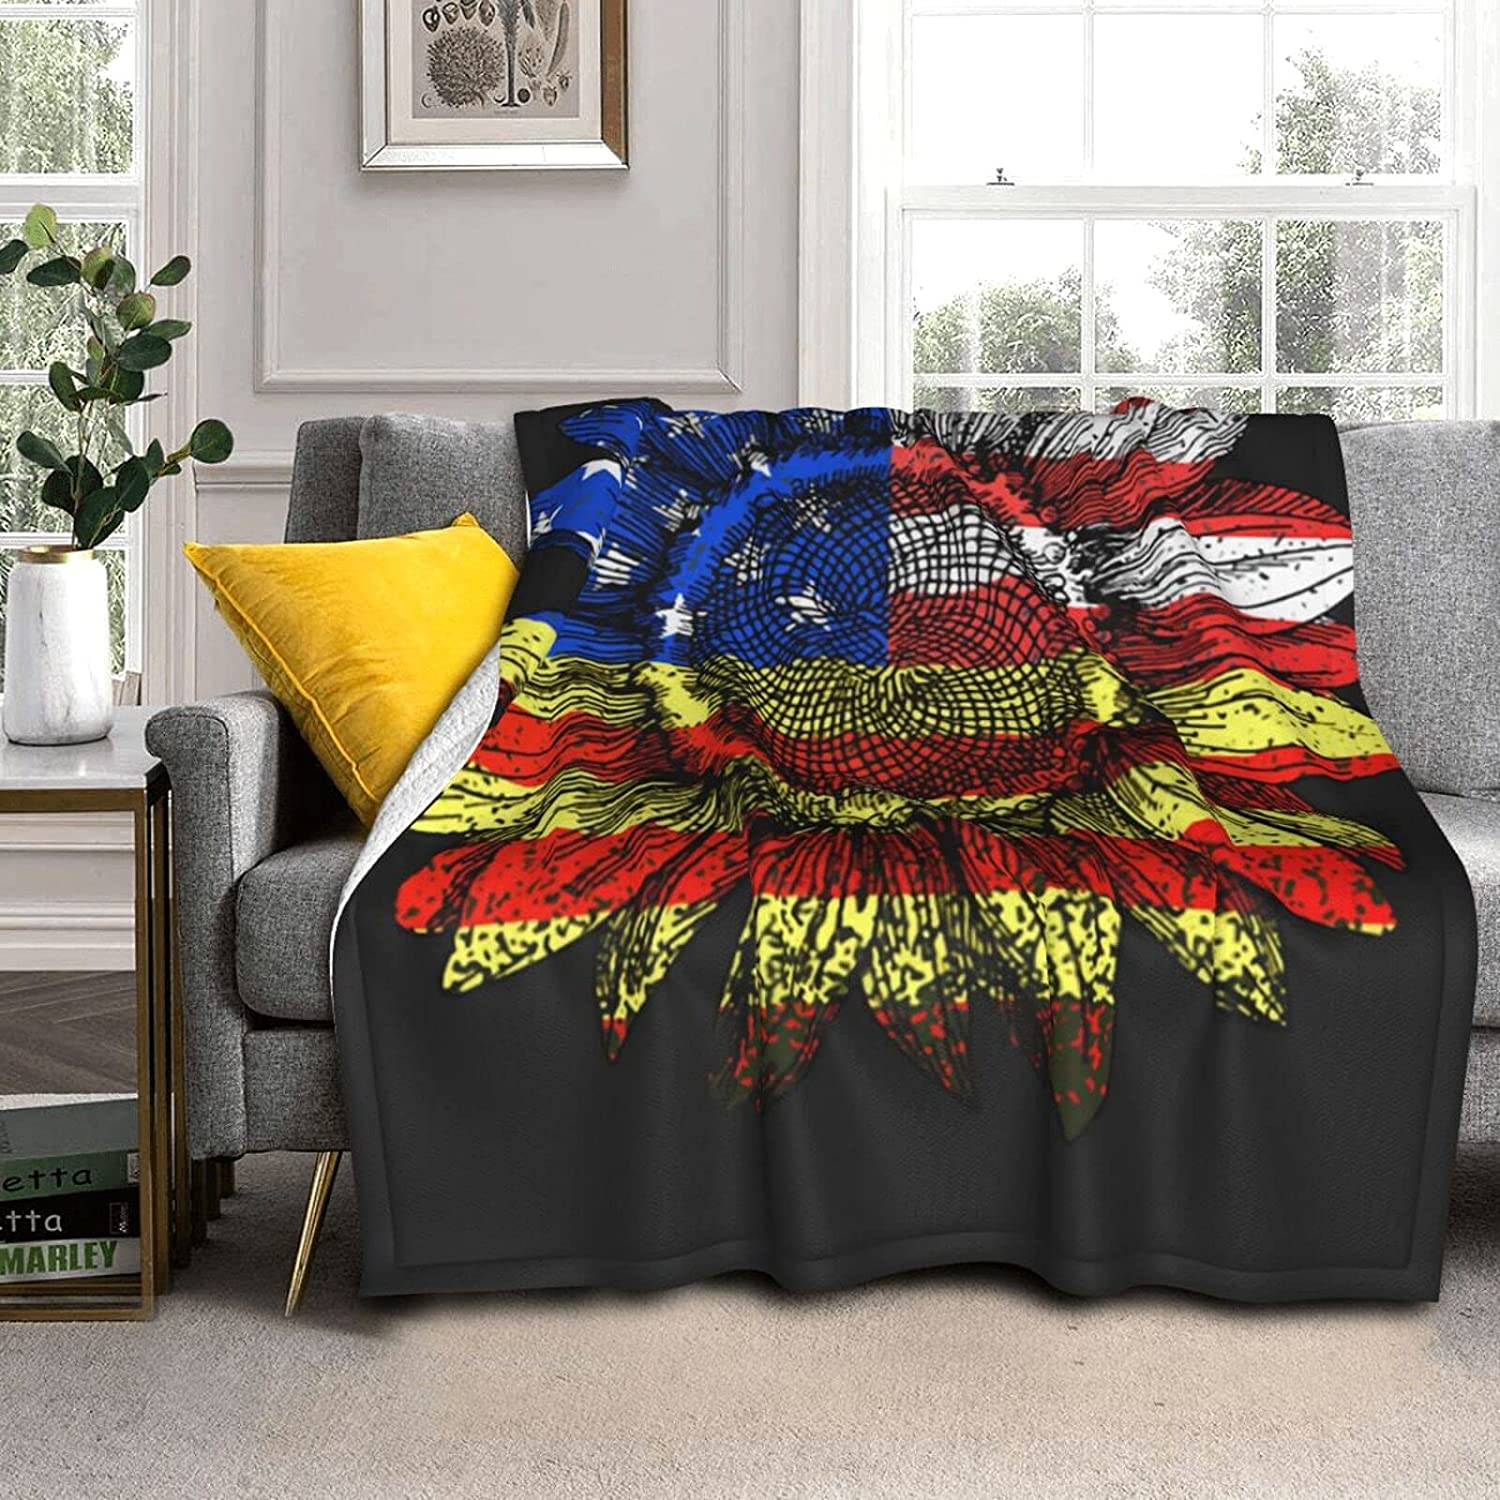 CHIFHOME Our shop most popular Fluzzy Sherpa Blankets Flag for Cou Sunflowers Fashion Blanket